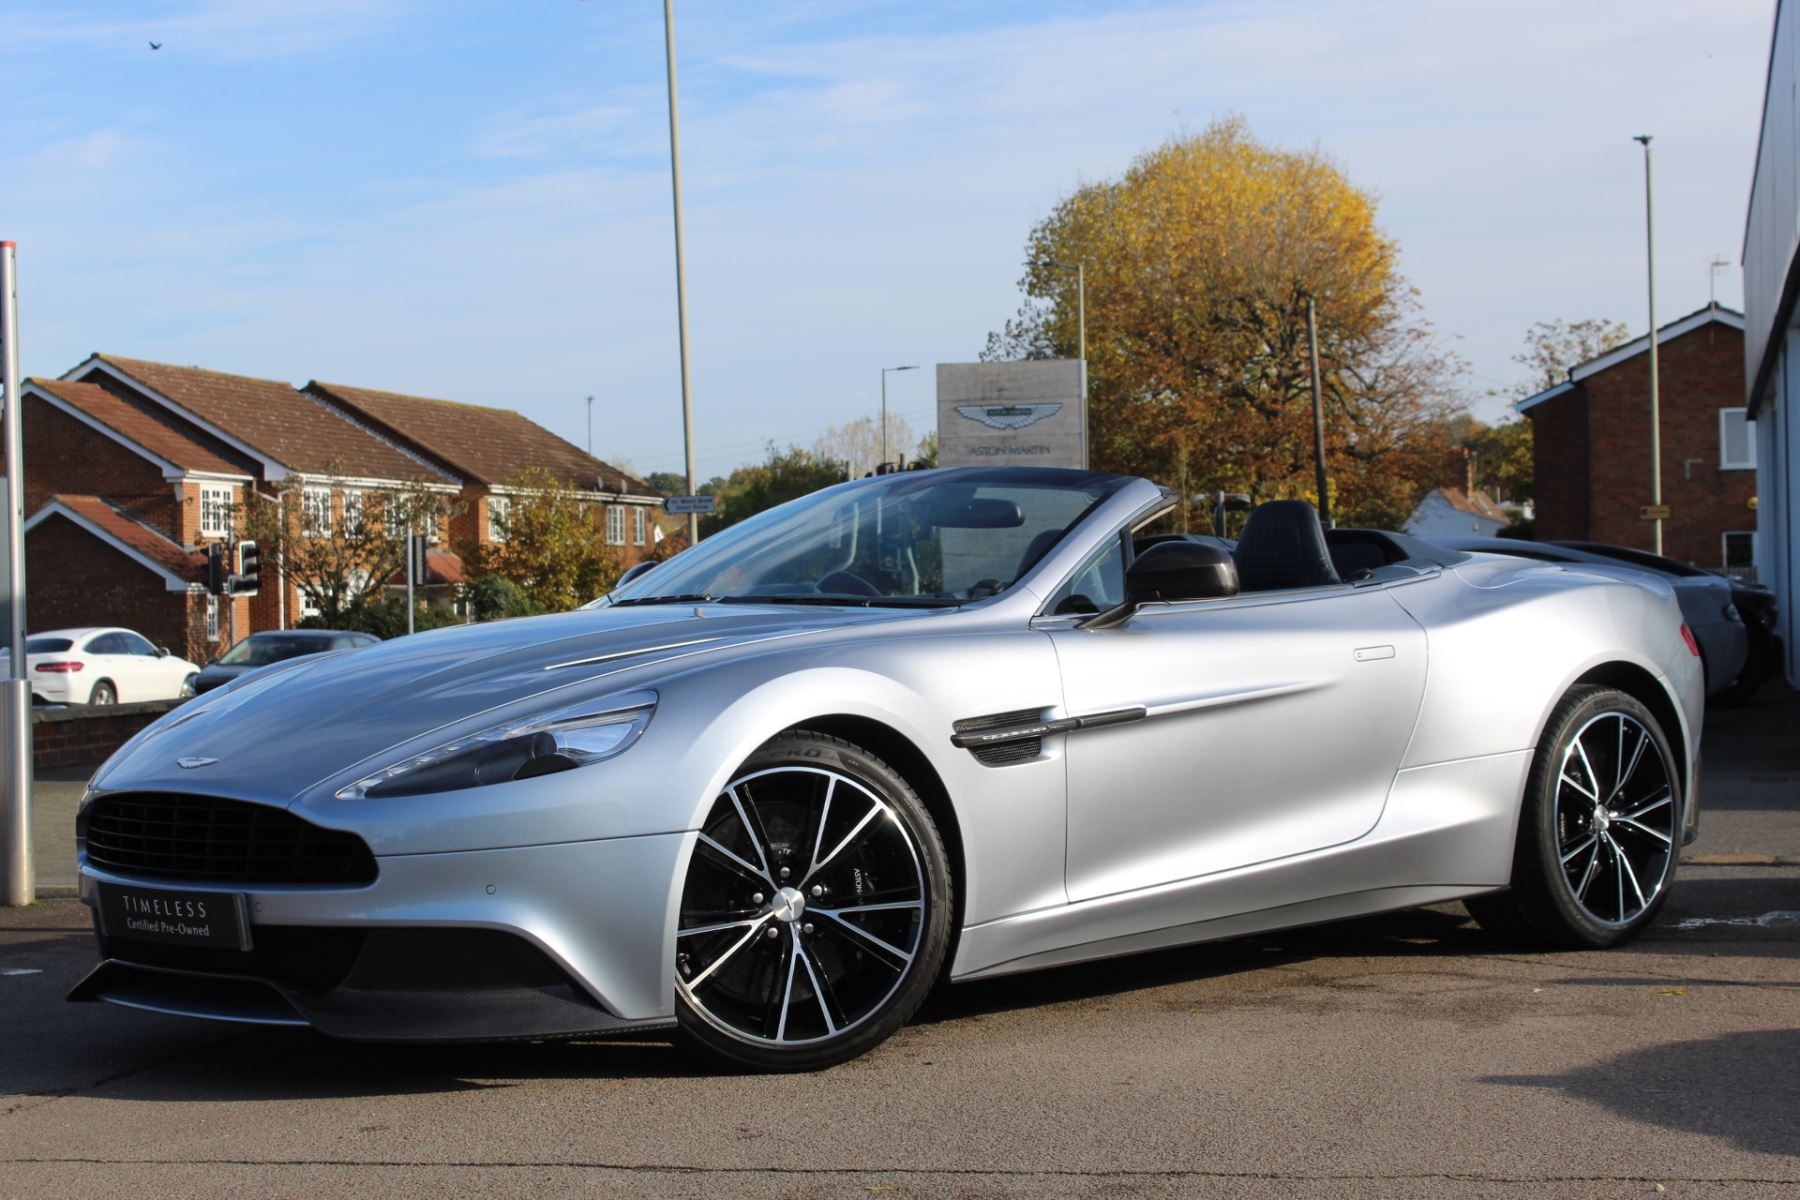 Aston Martin Vanquish V12 2dr Volante Touchtronic 5.9 Automatic Convertible (2014) image